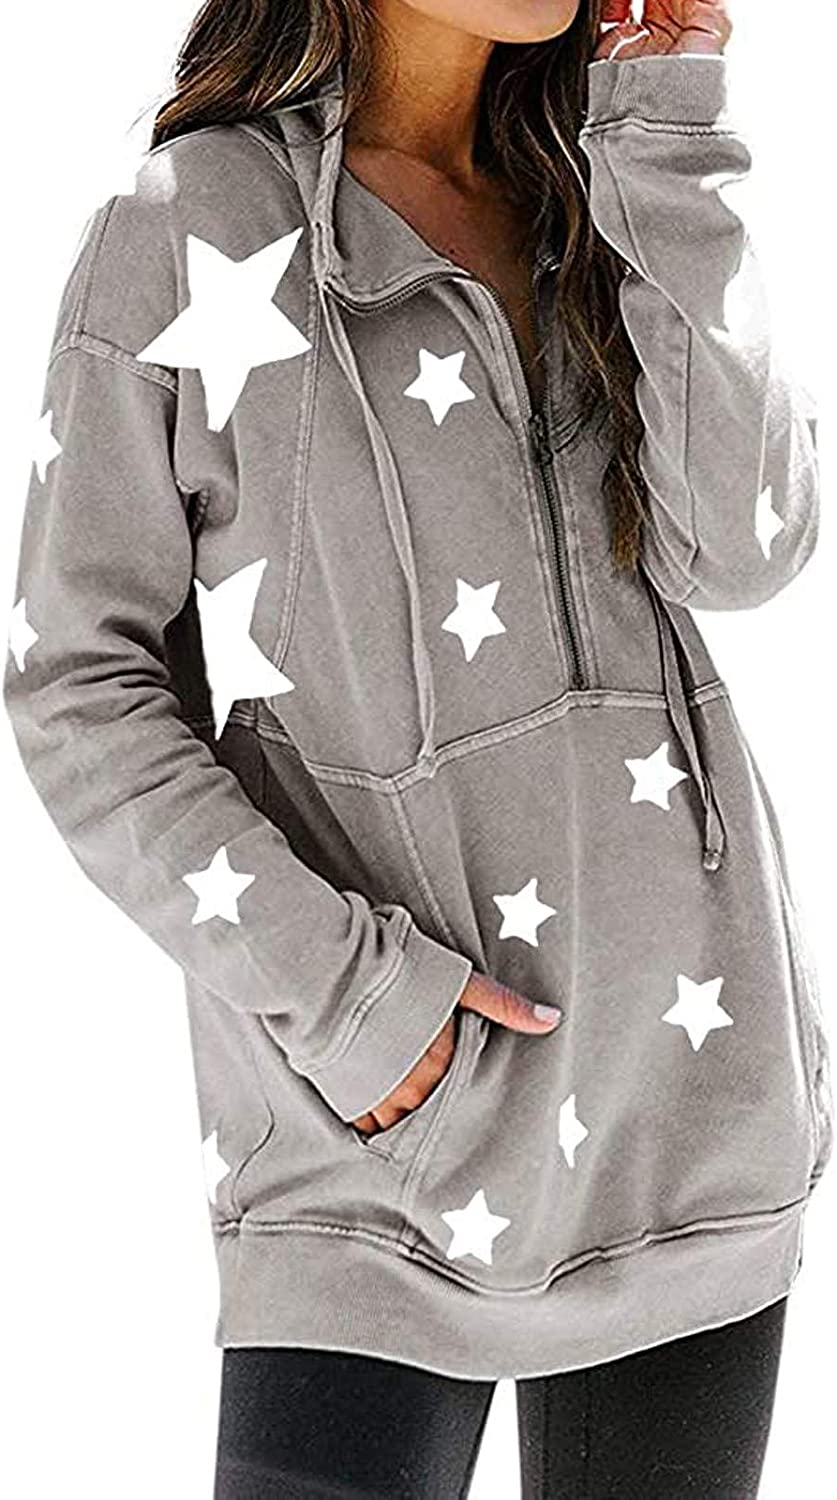 AODONG Pottseth Sweatshirts for Women Hoodie,Solid Button Down Long Sleeve Shirt Hoodies Loose Casual Pullover with Pocket